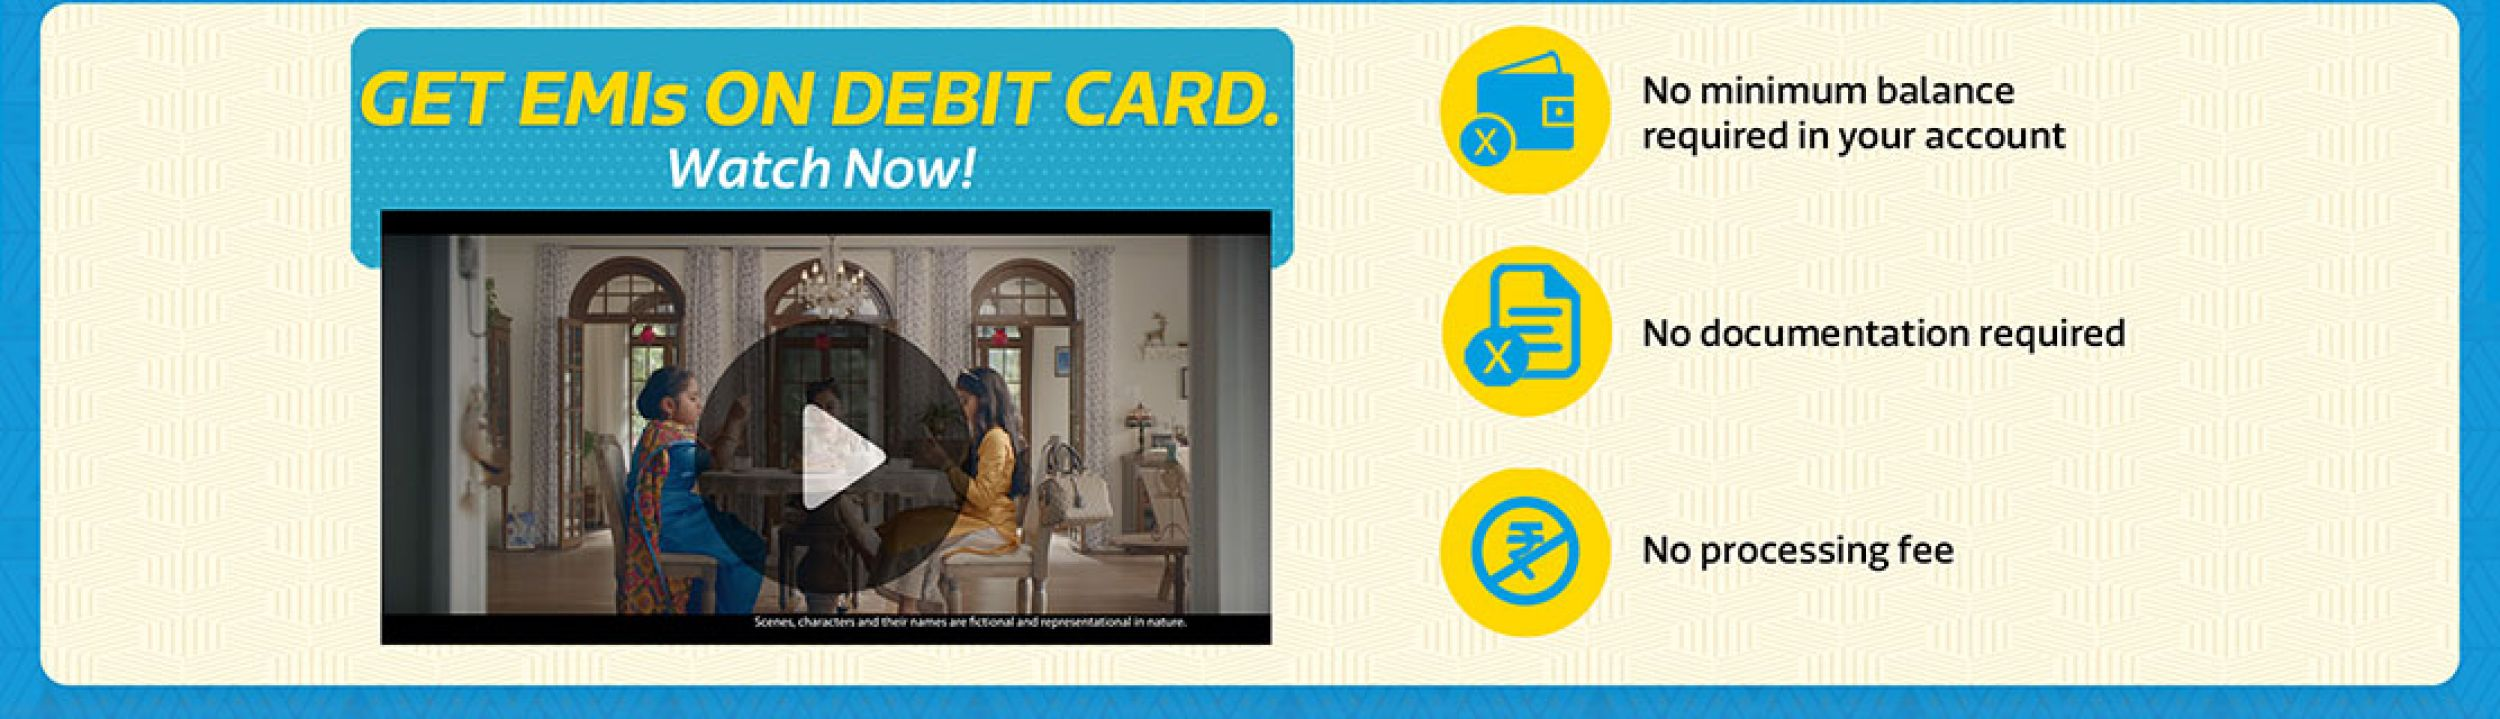 EMI on Debit Cards | Easy Installments on Debit Cards at Flipkart com